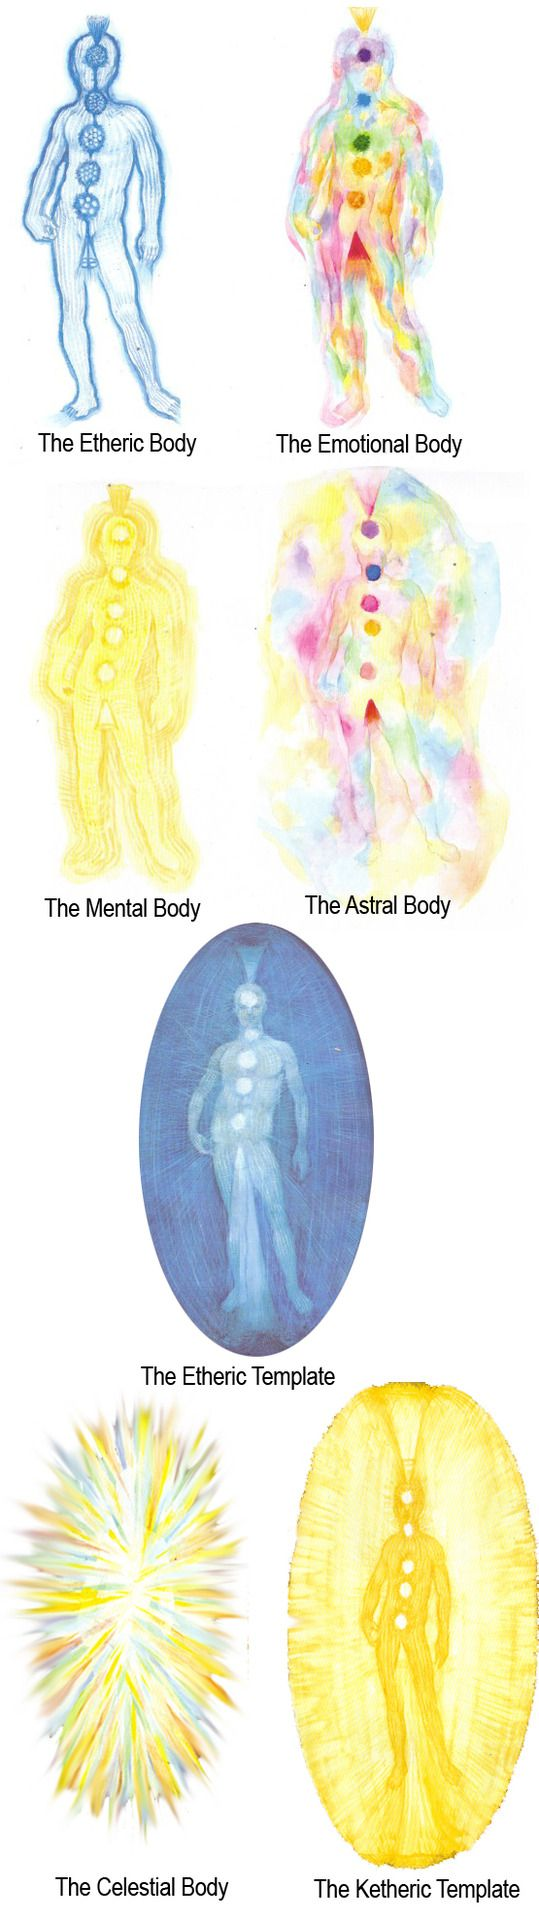 "The different layers of the Human Energy field in the Aura dimension from the book Barbara Brennan ""Handsof Light"""